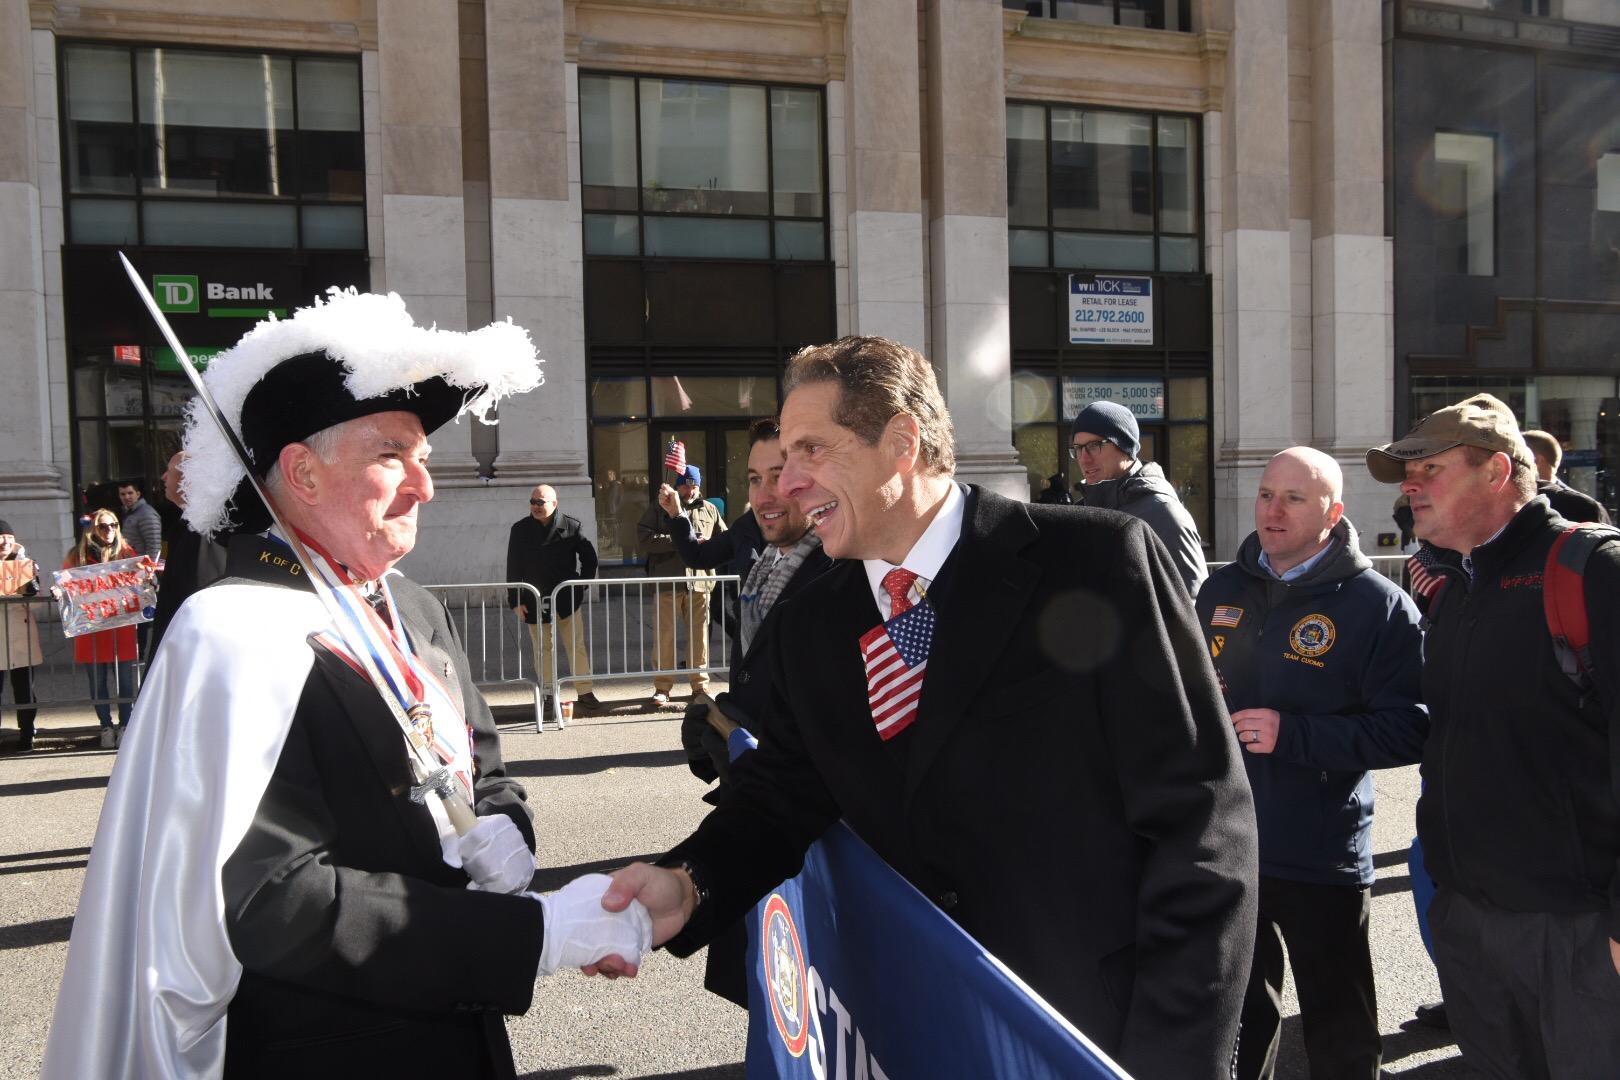 Governor Andrew Cuomo participates in Veterans Day parade in New York City